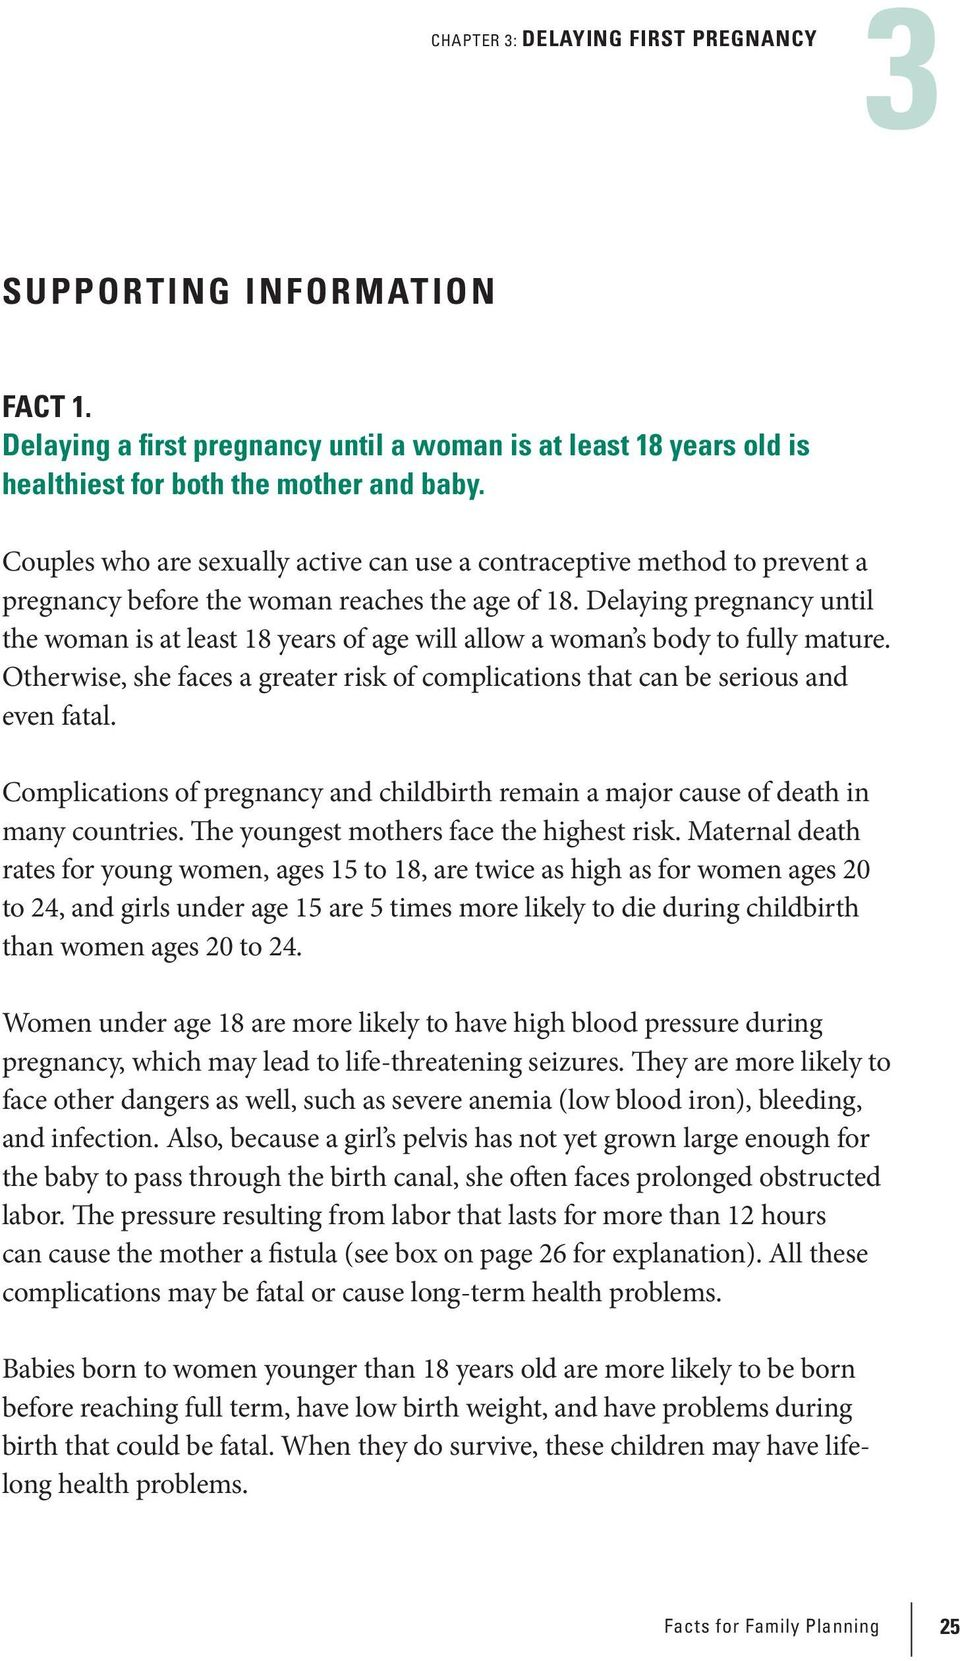 Delaying pregnancy until the woman is at least 18 years of age will allow a woman s body to fully mature. Otherwise, she faces a greater risk of complications that can be serious and even fatal.